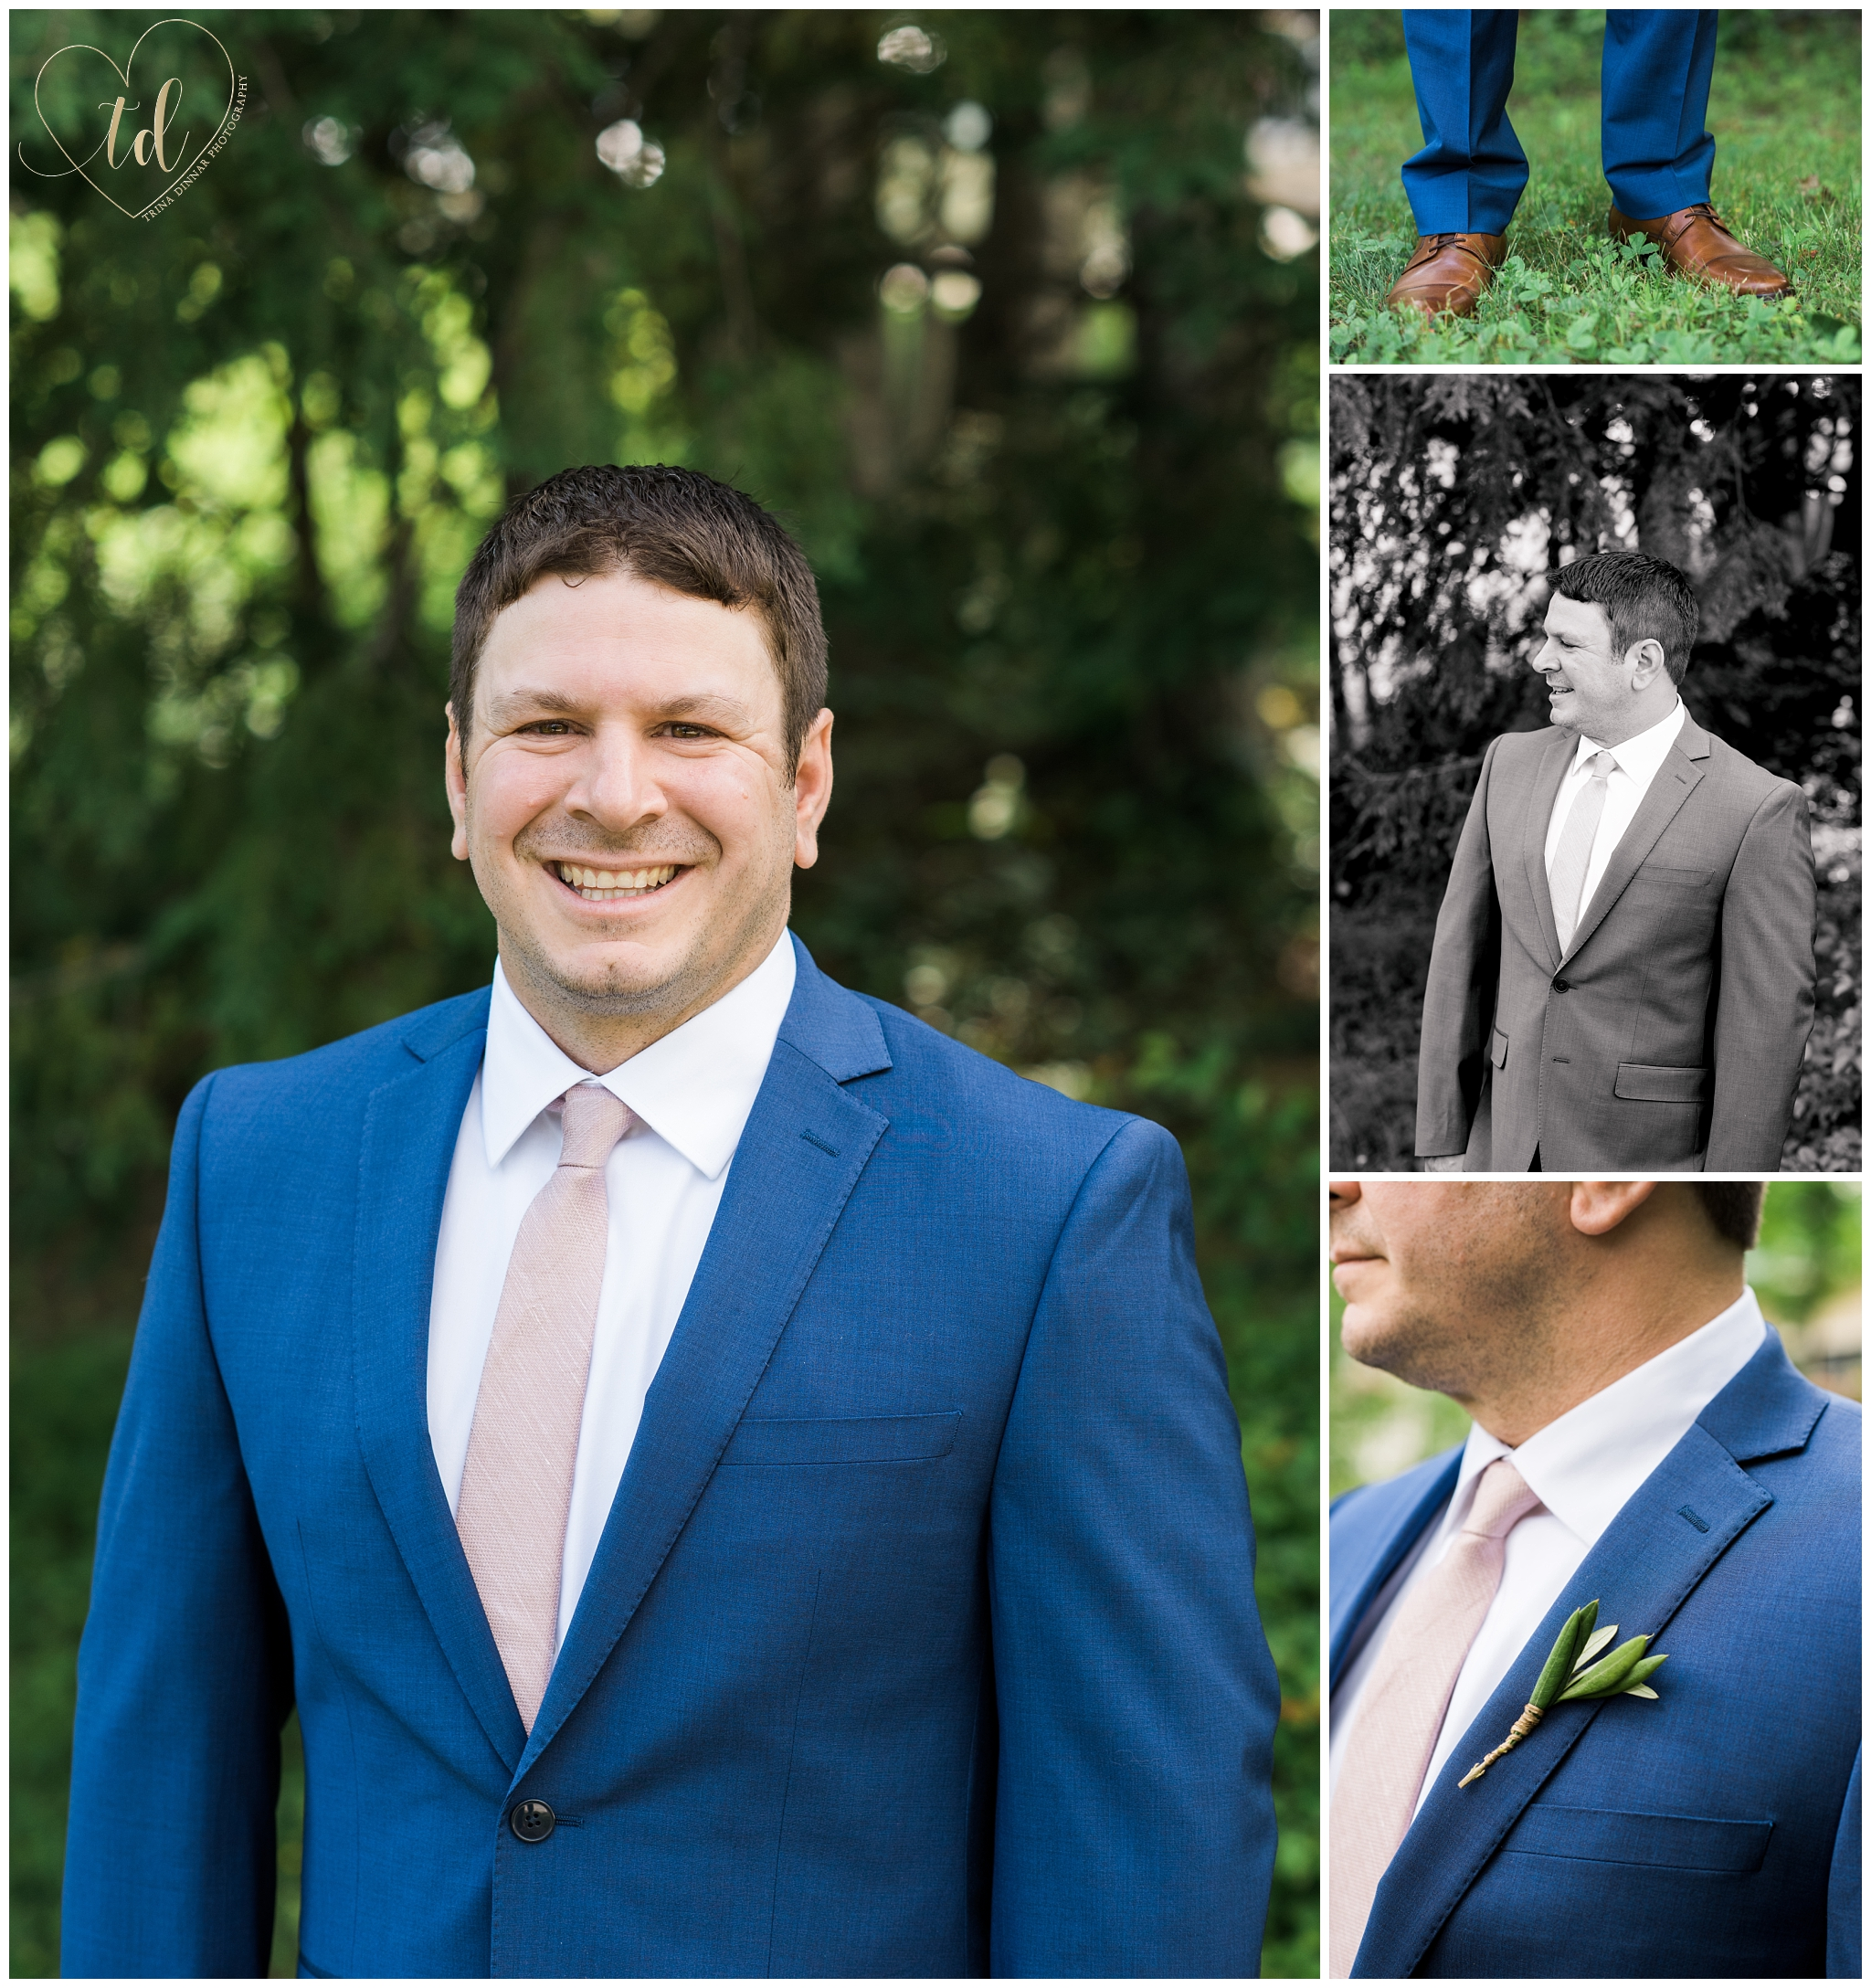 Portraits of a Maine groom as he prepares for his wedding day.